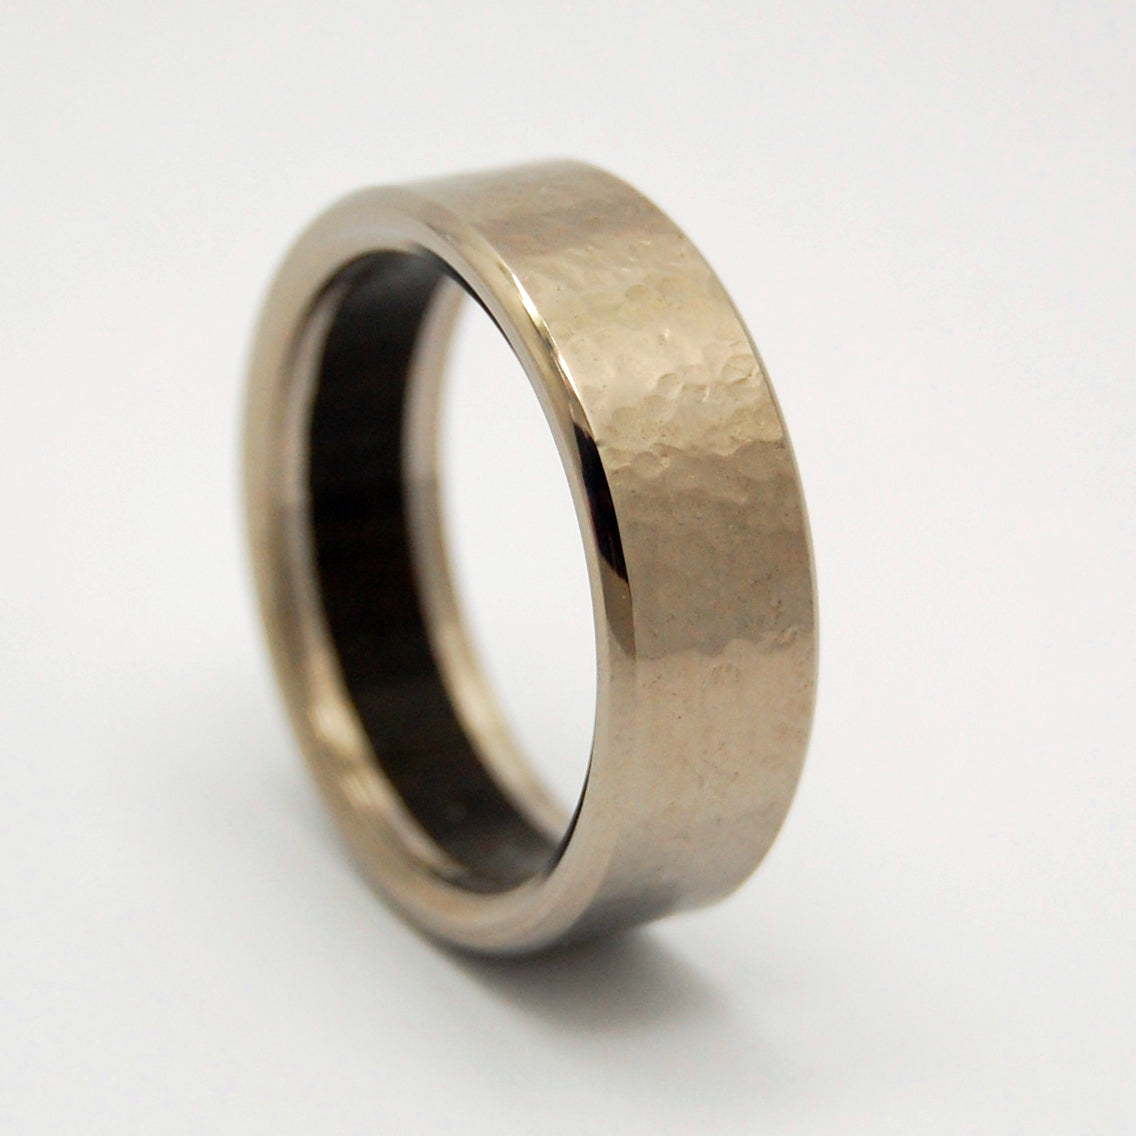 BOG | Aged Bog Oak Wood & Titanium - Unique Wedding Rings - Titanium Wedding Rings - Minter and Richter Designs